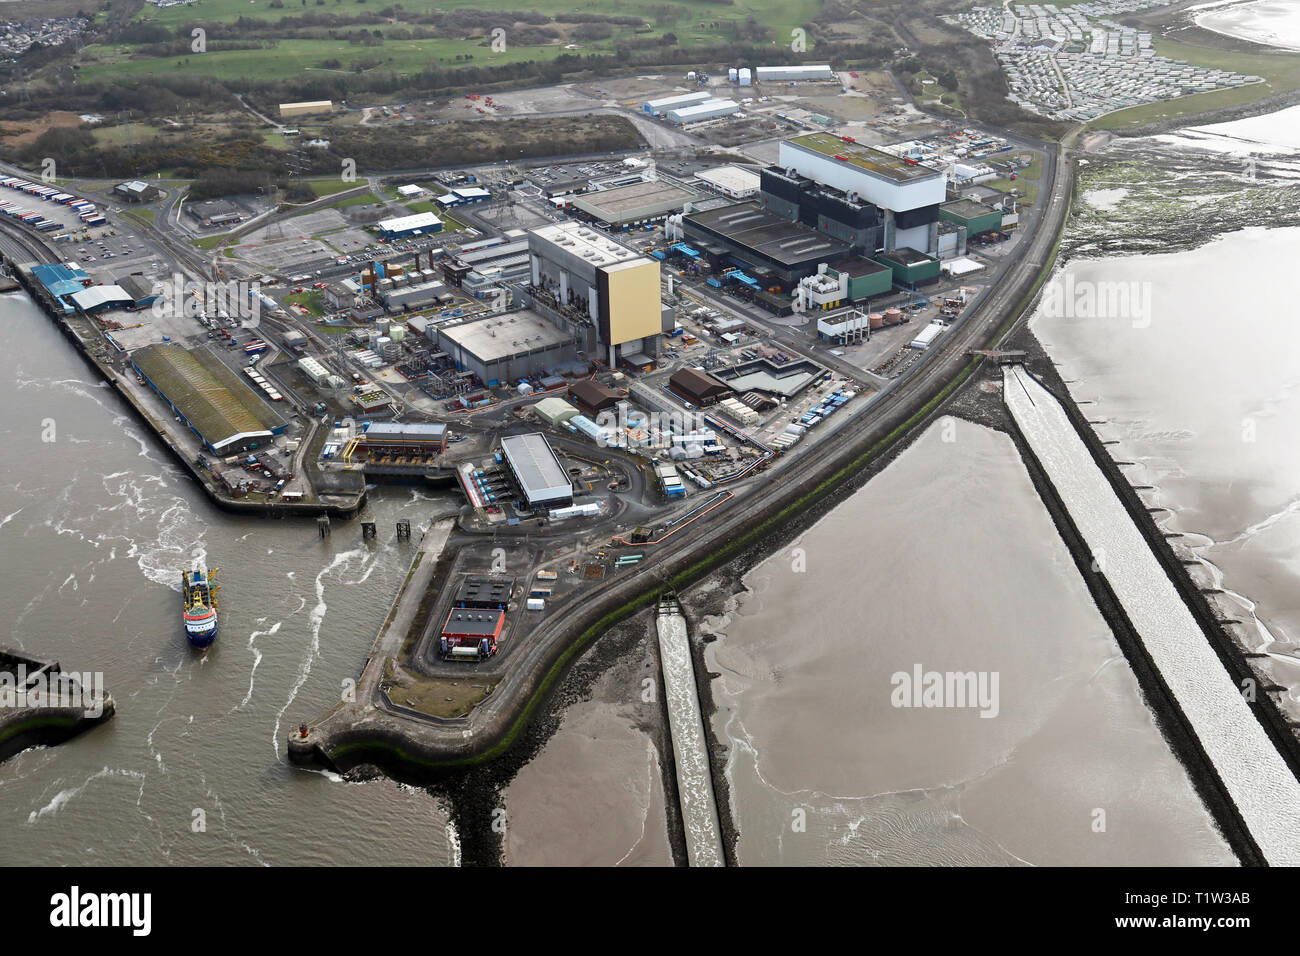 aerial view of Heysham Nuclear Power Station - Stock Image